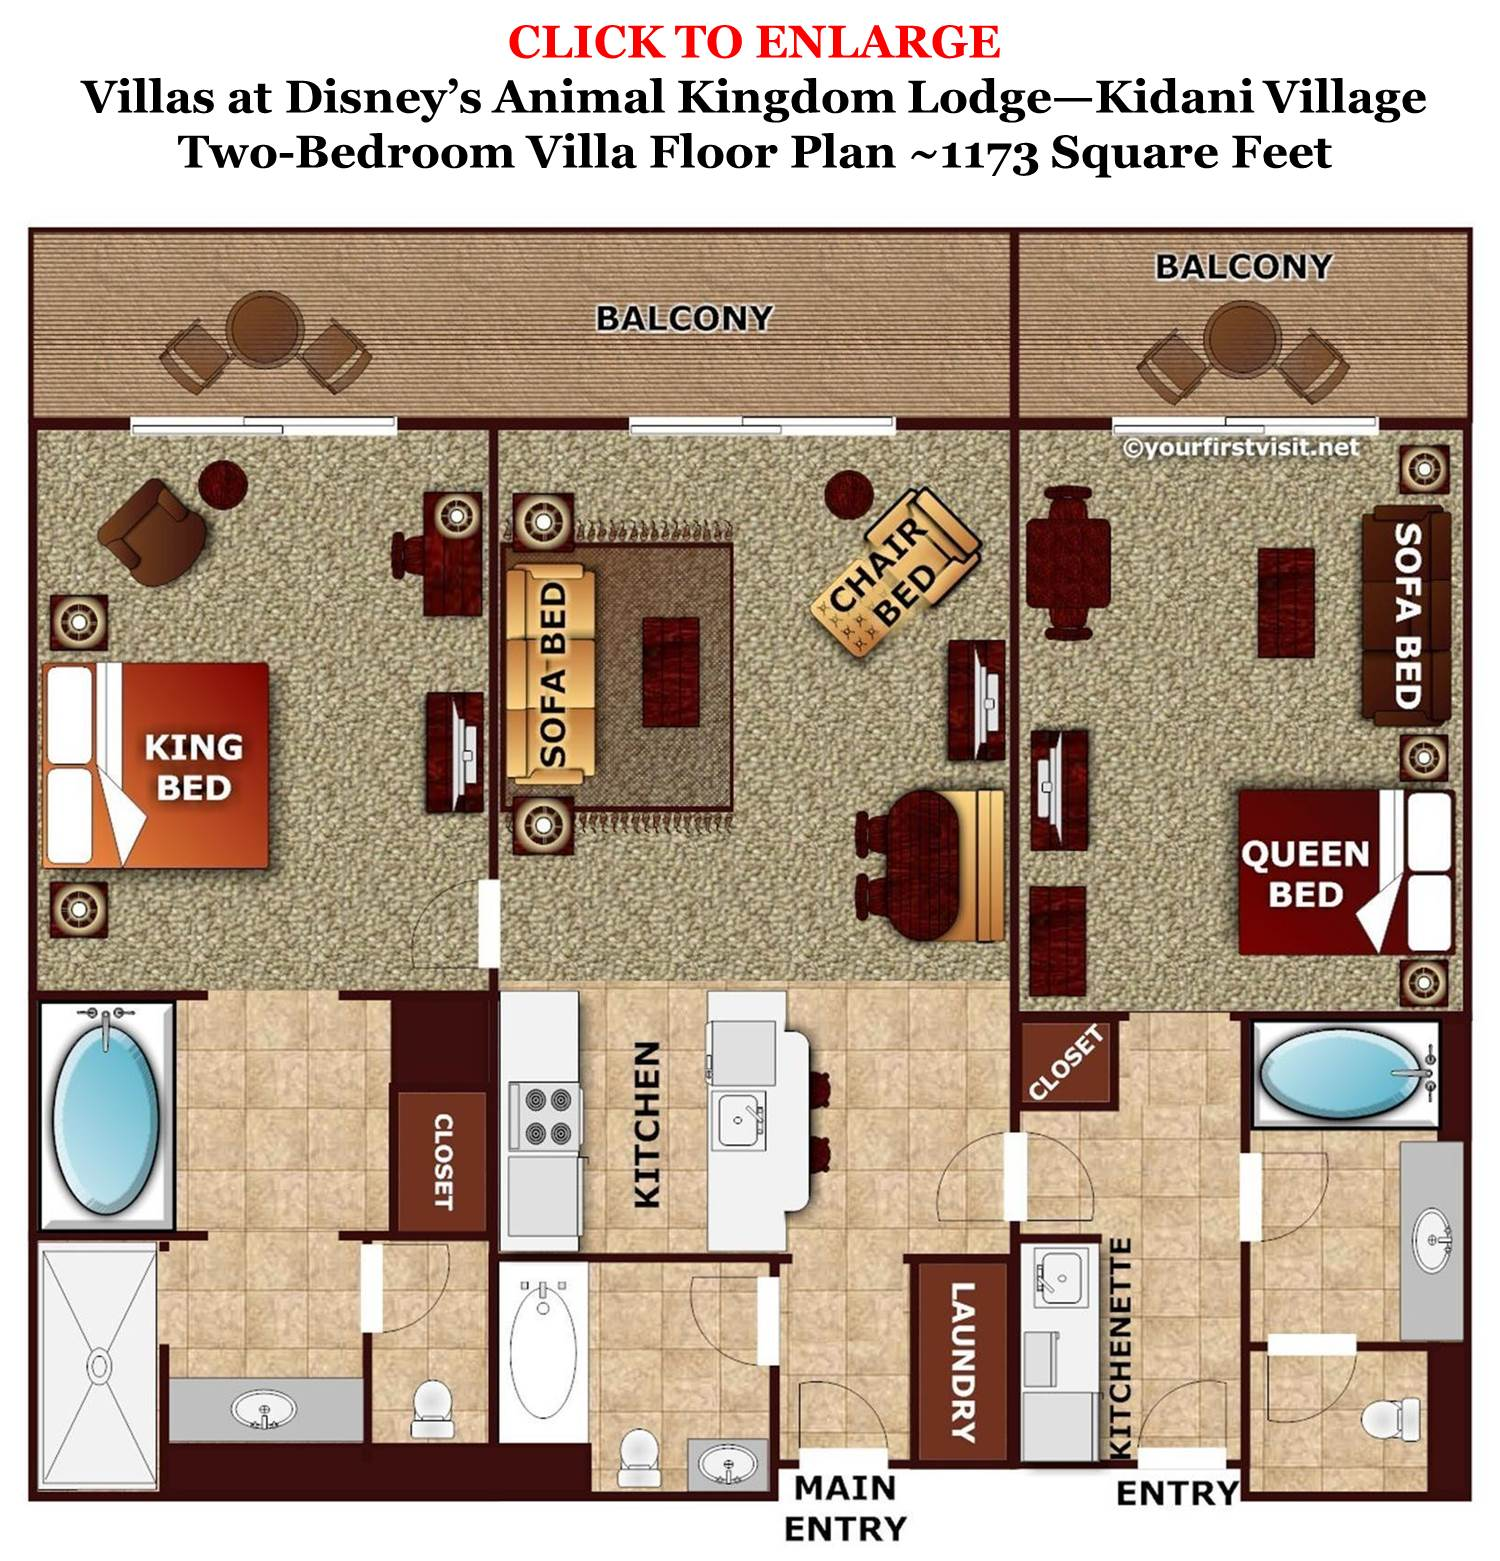 two bedroom villa floor plan kidani village from. 2 Bedroom Hotel Villas In Orlando  An Error Occurred  Buy A 7